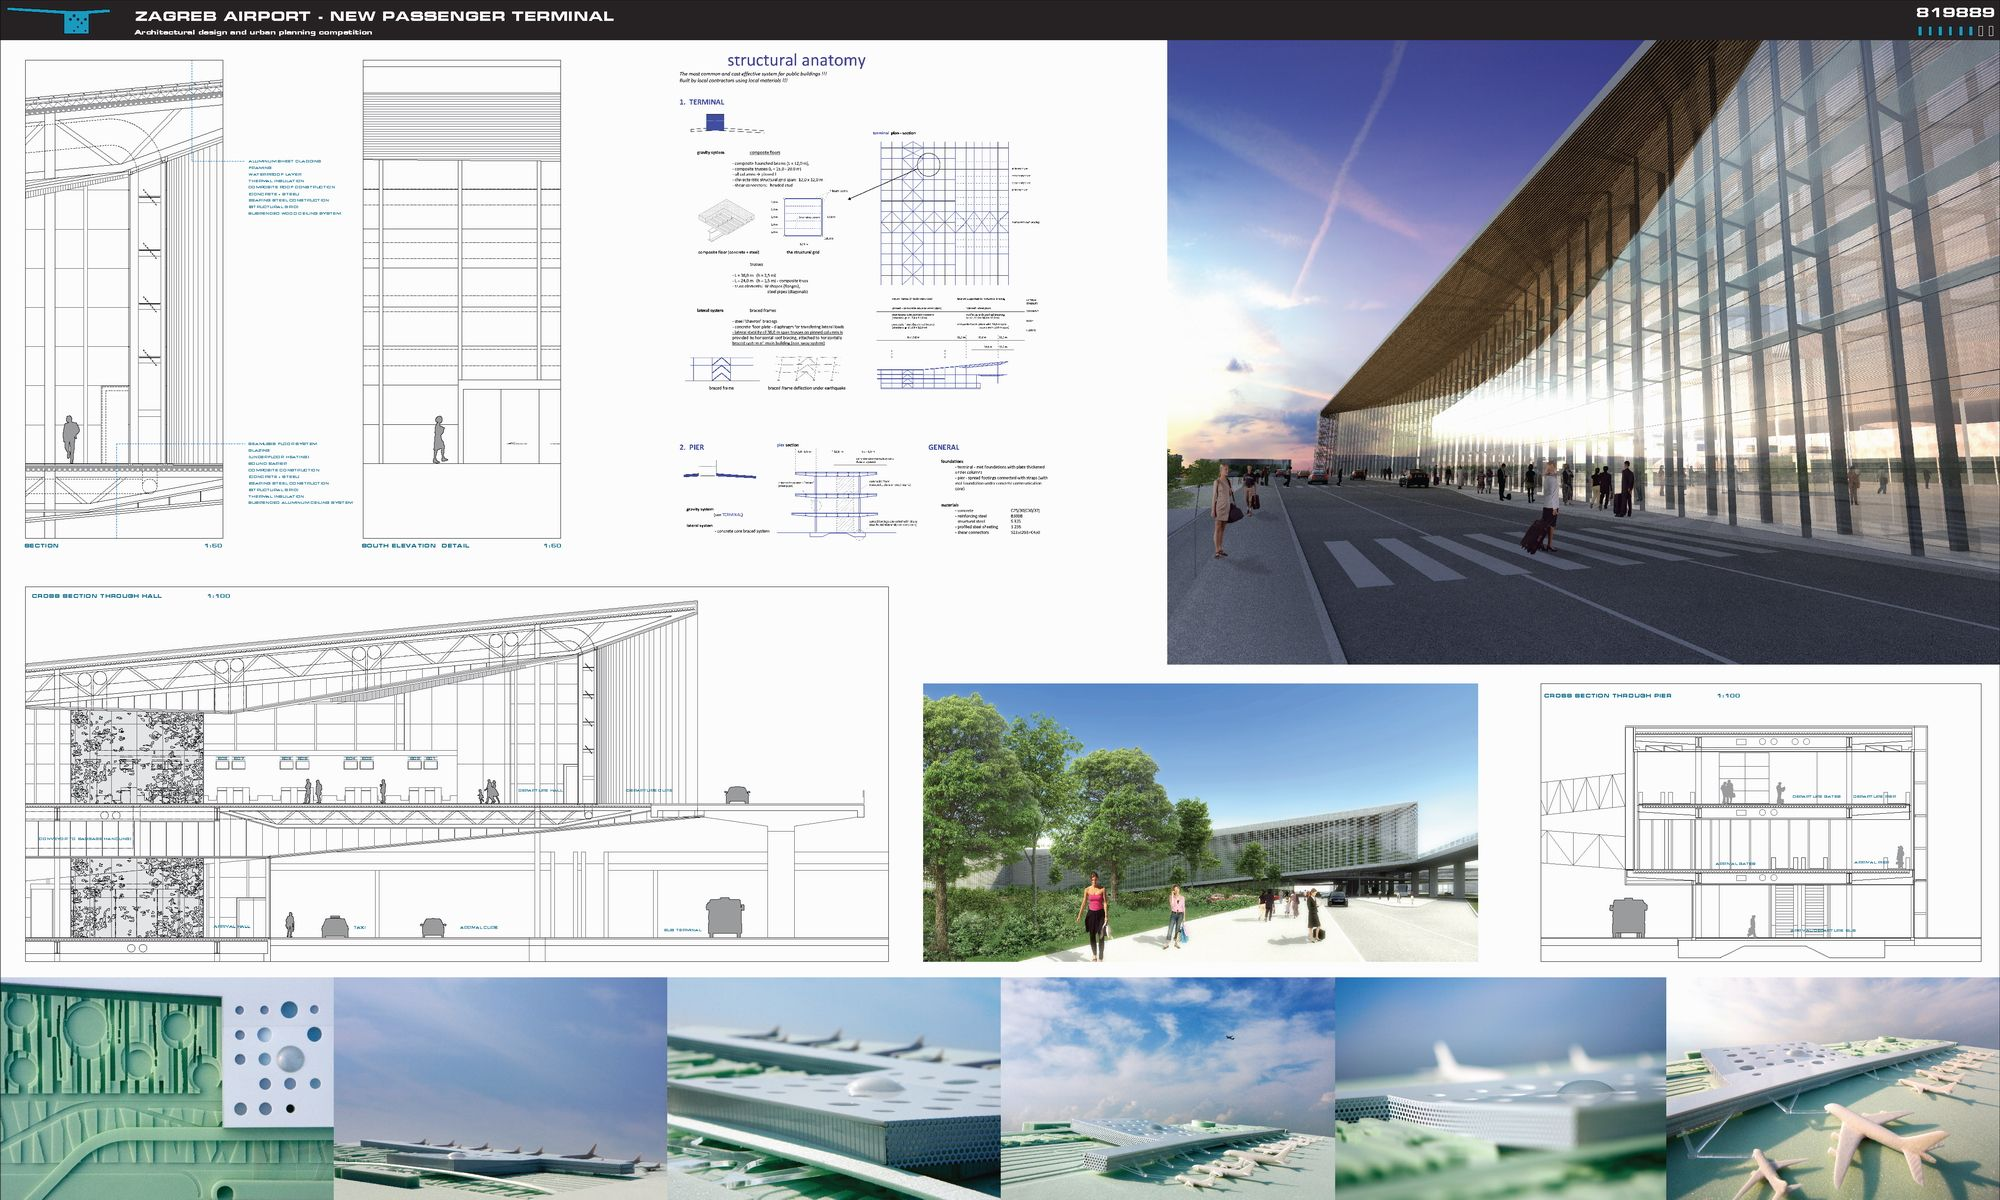 Pin By Rong Yin On New Passenger Terminal For Zagreb Airport Croatia Zagreb Passenger